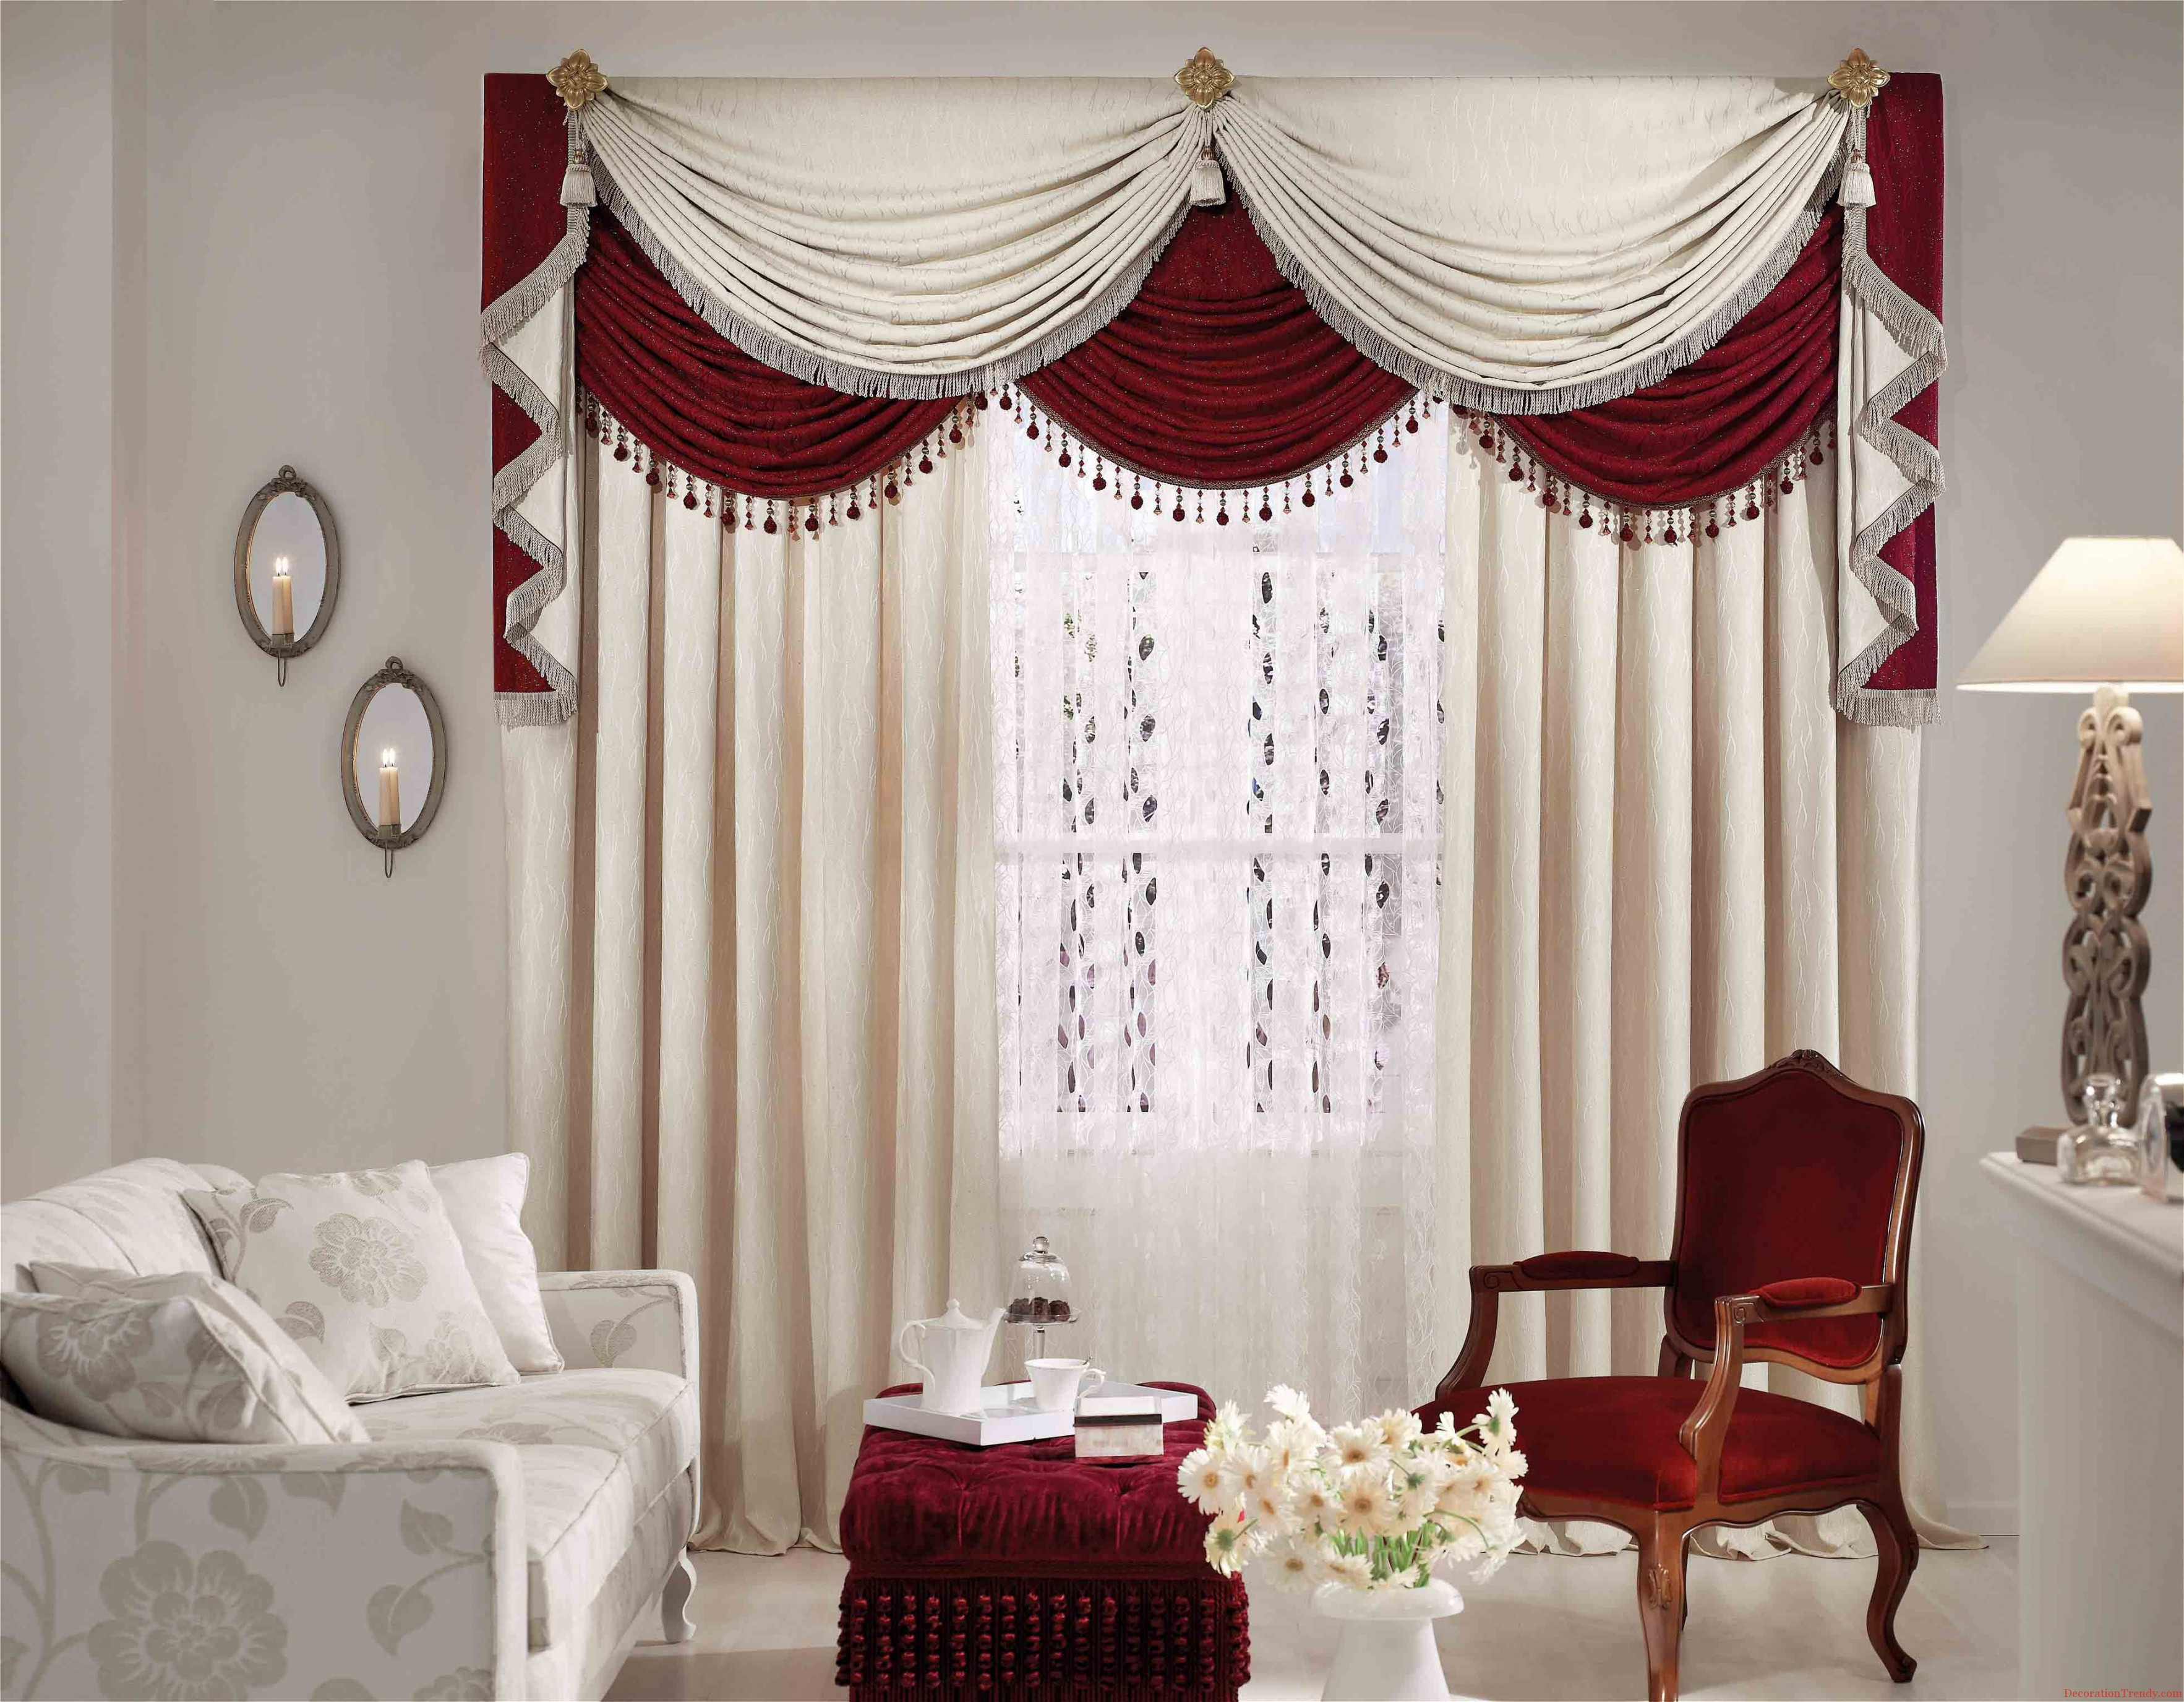 Exquisite Decoration Drapery Designs For Living Room Drapery Designs For  Living Room 21 Latest Curtains For